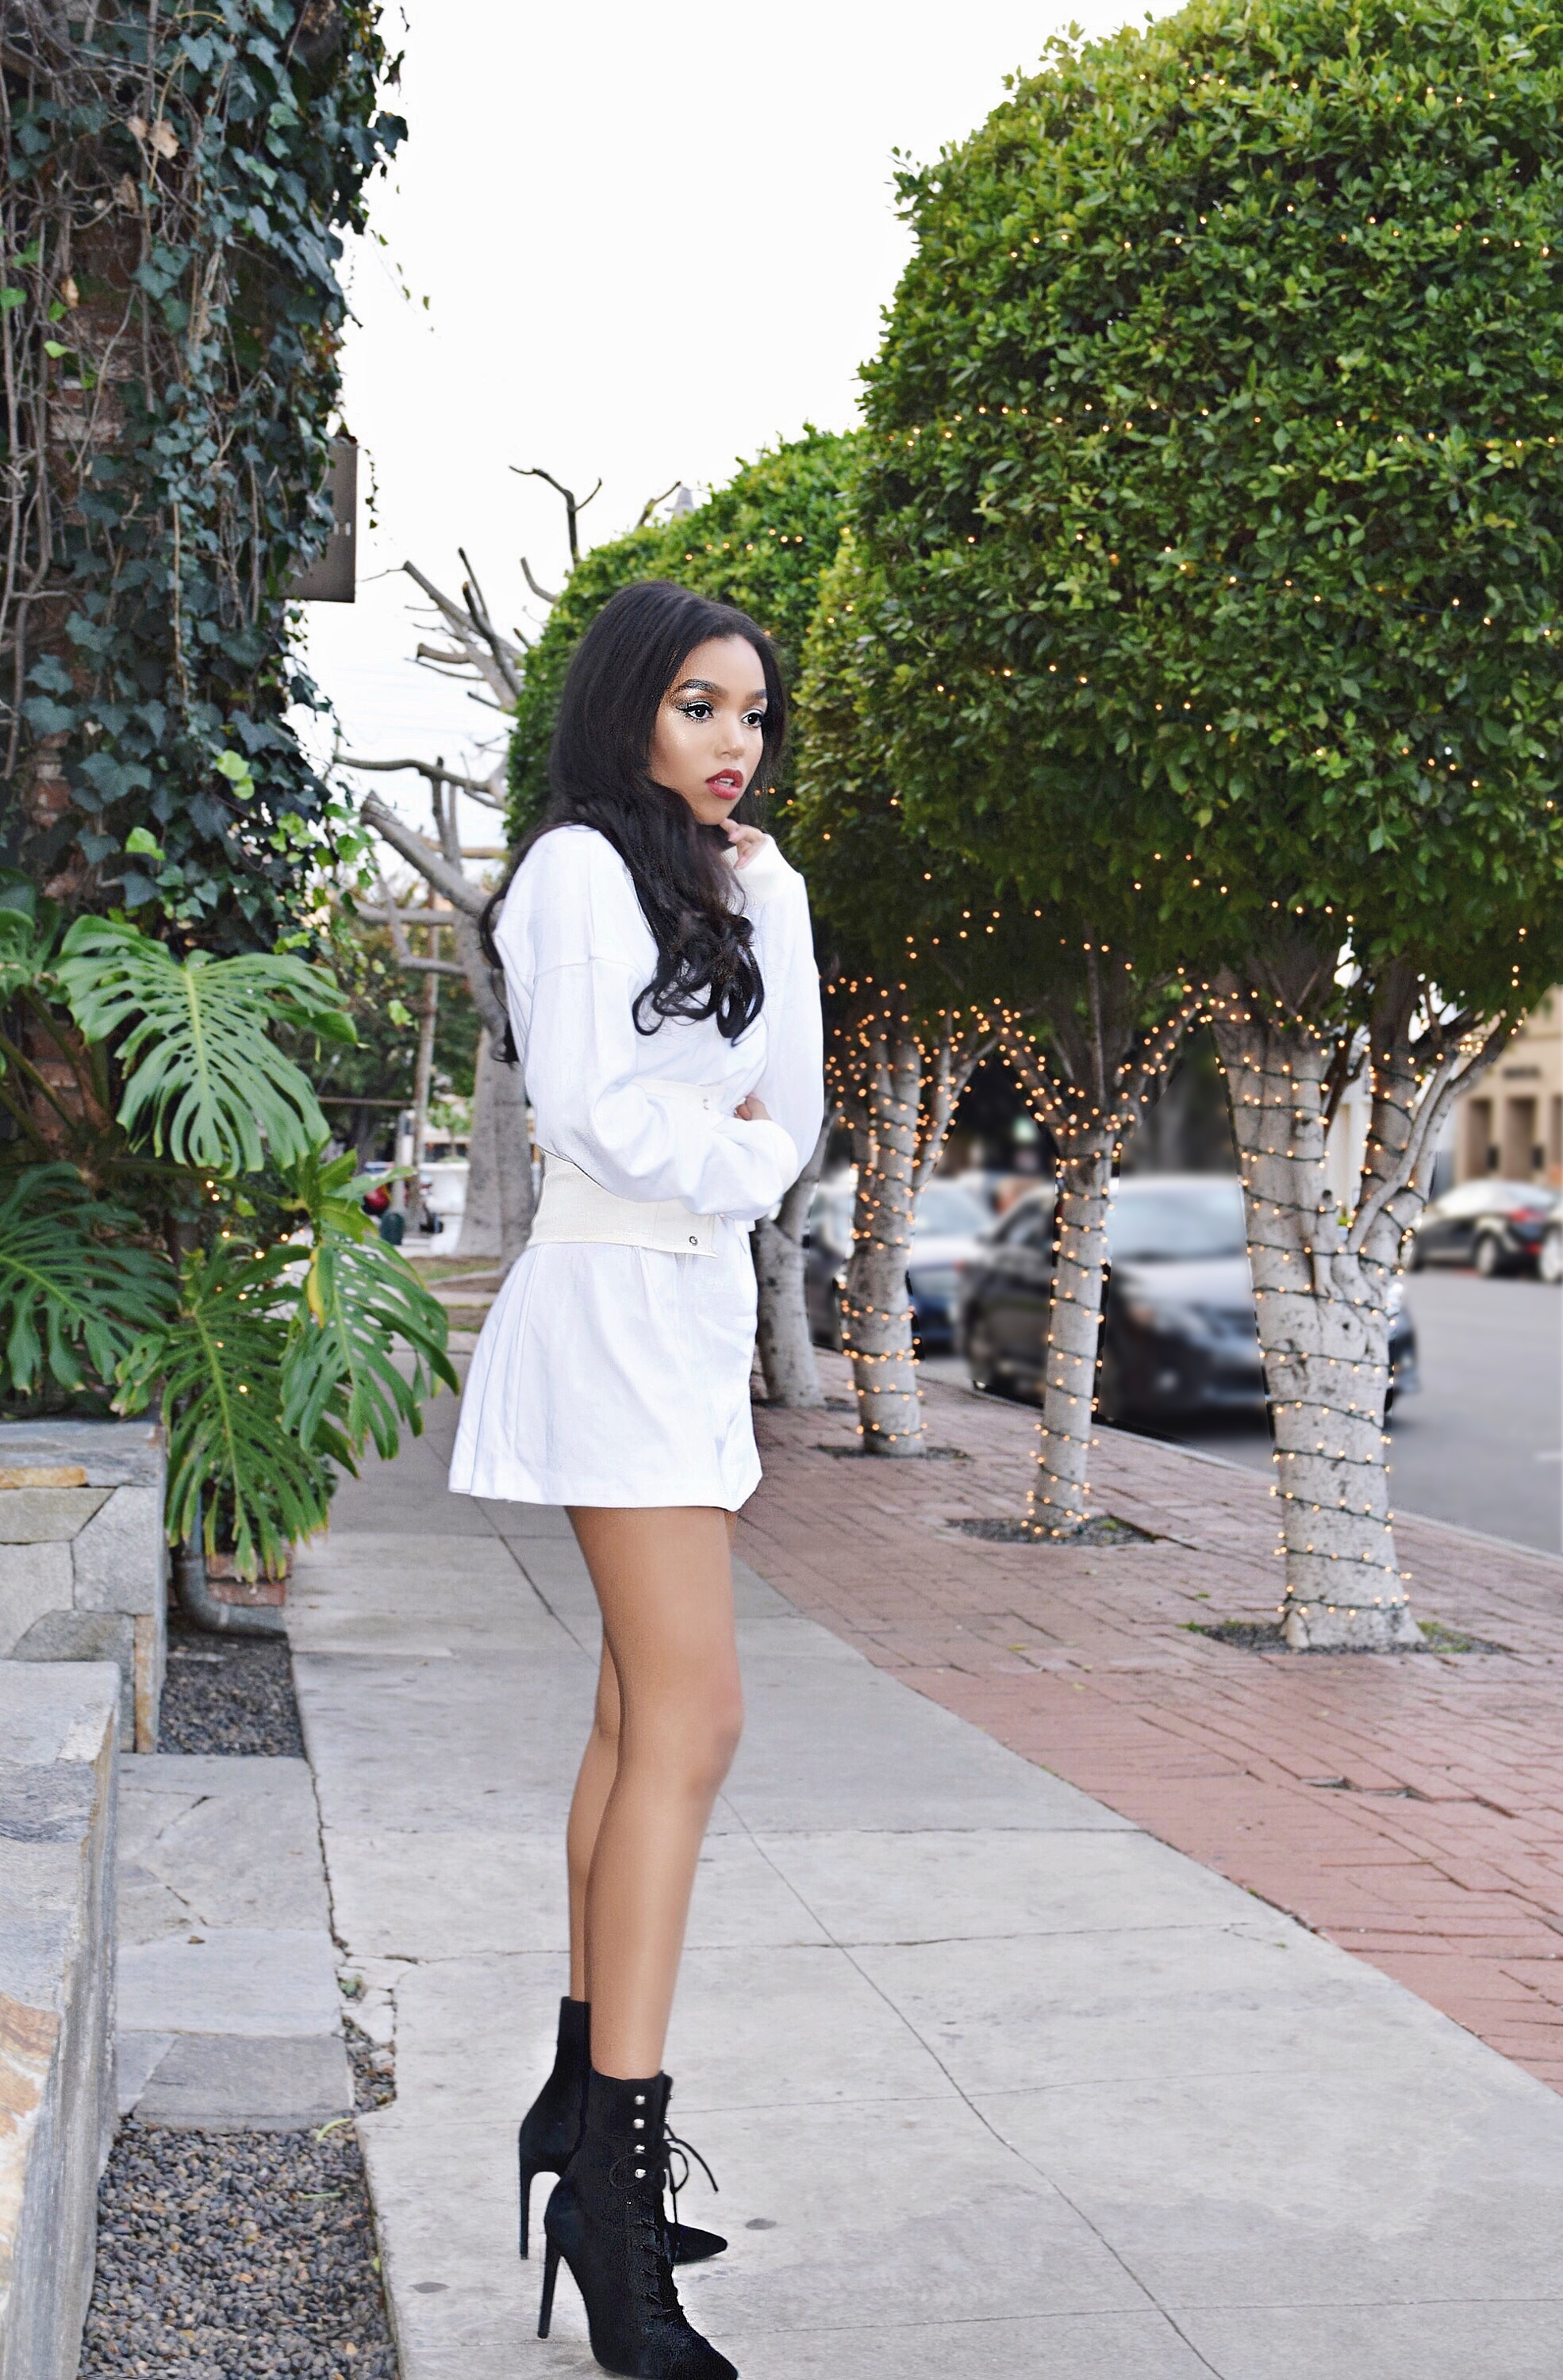 Lace It Up | The Corset Trend // My Mum Made It Sweatshirt Dress & White Corset Belt // Rhinestone Choker // Louis Vuitton Monogram Print Mini Backpack // Jeffrey Campbell Lace Up Heeled Booties // Los Angeles Fashion Blogger Daphne Blunt: To Style, With Love